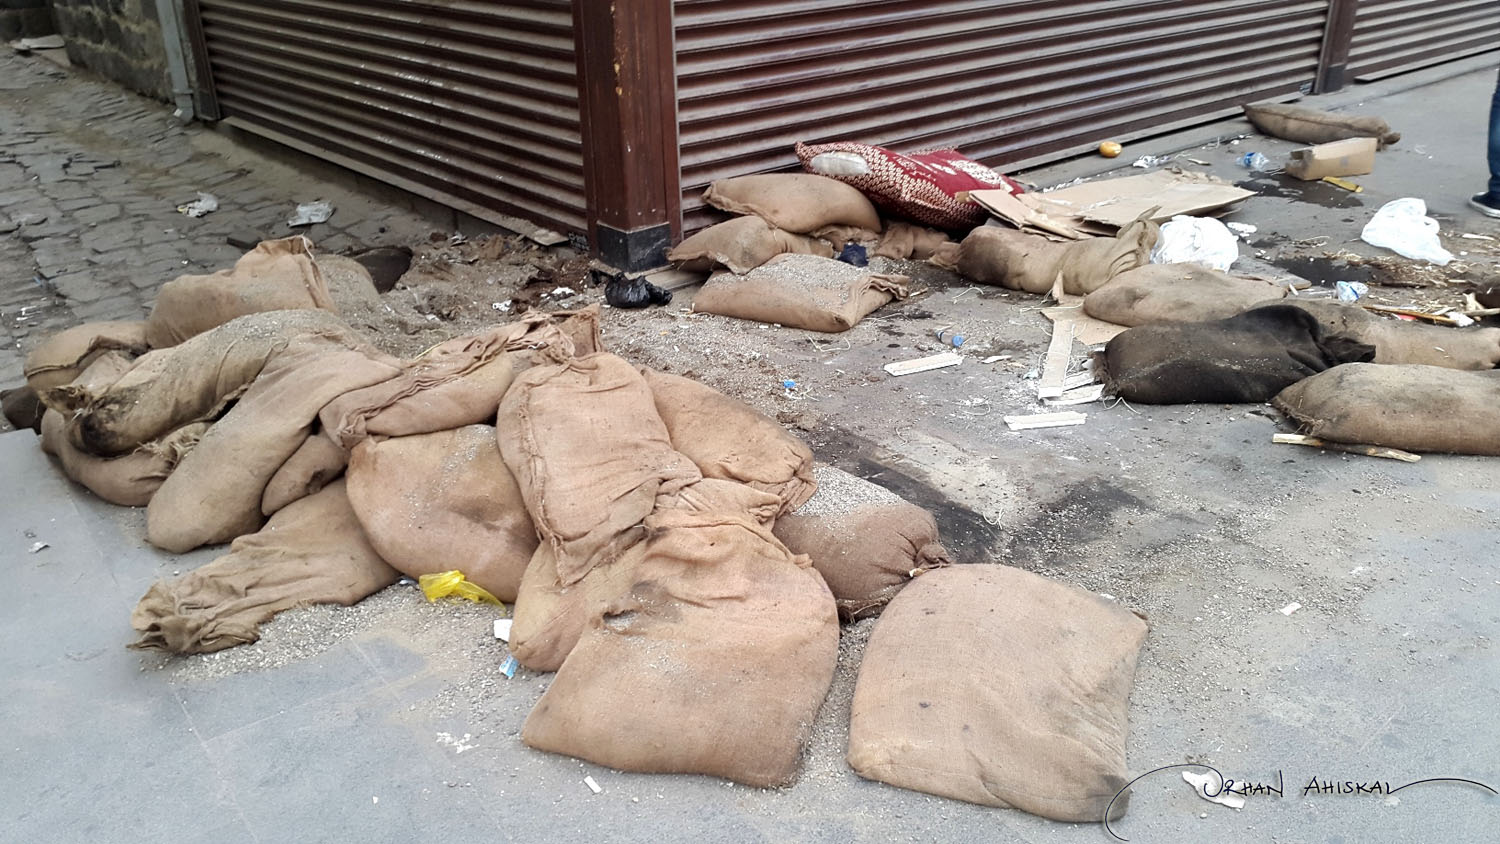 Sandbags from barricades at Sur. Photo: Orhan Ahıskal